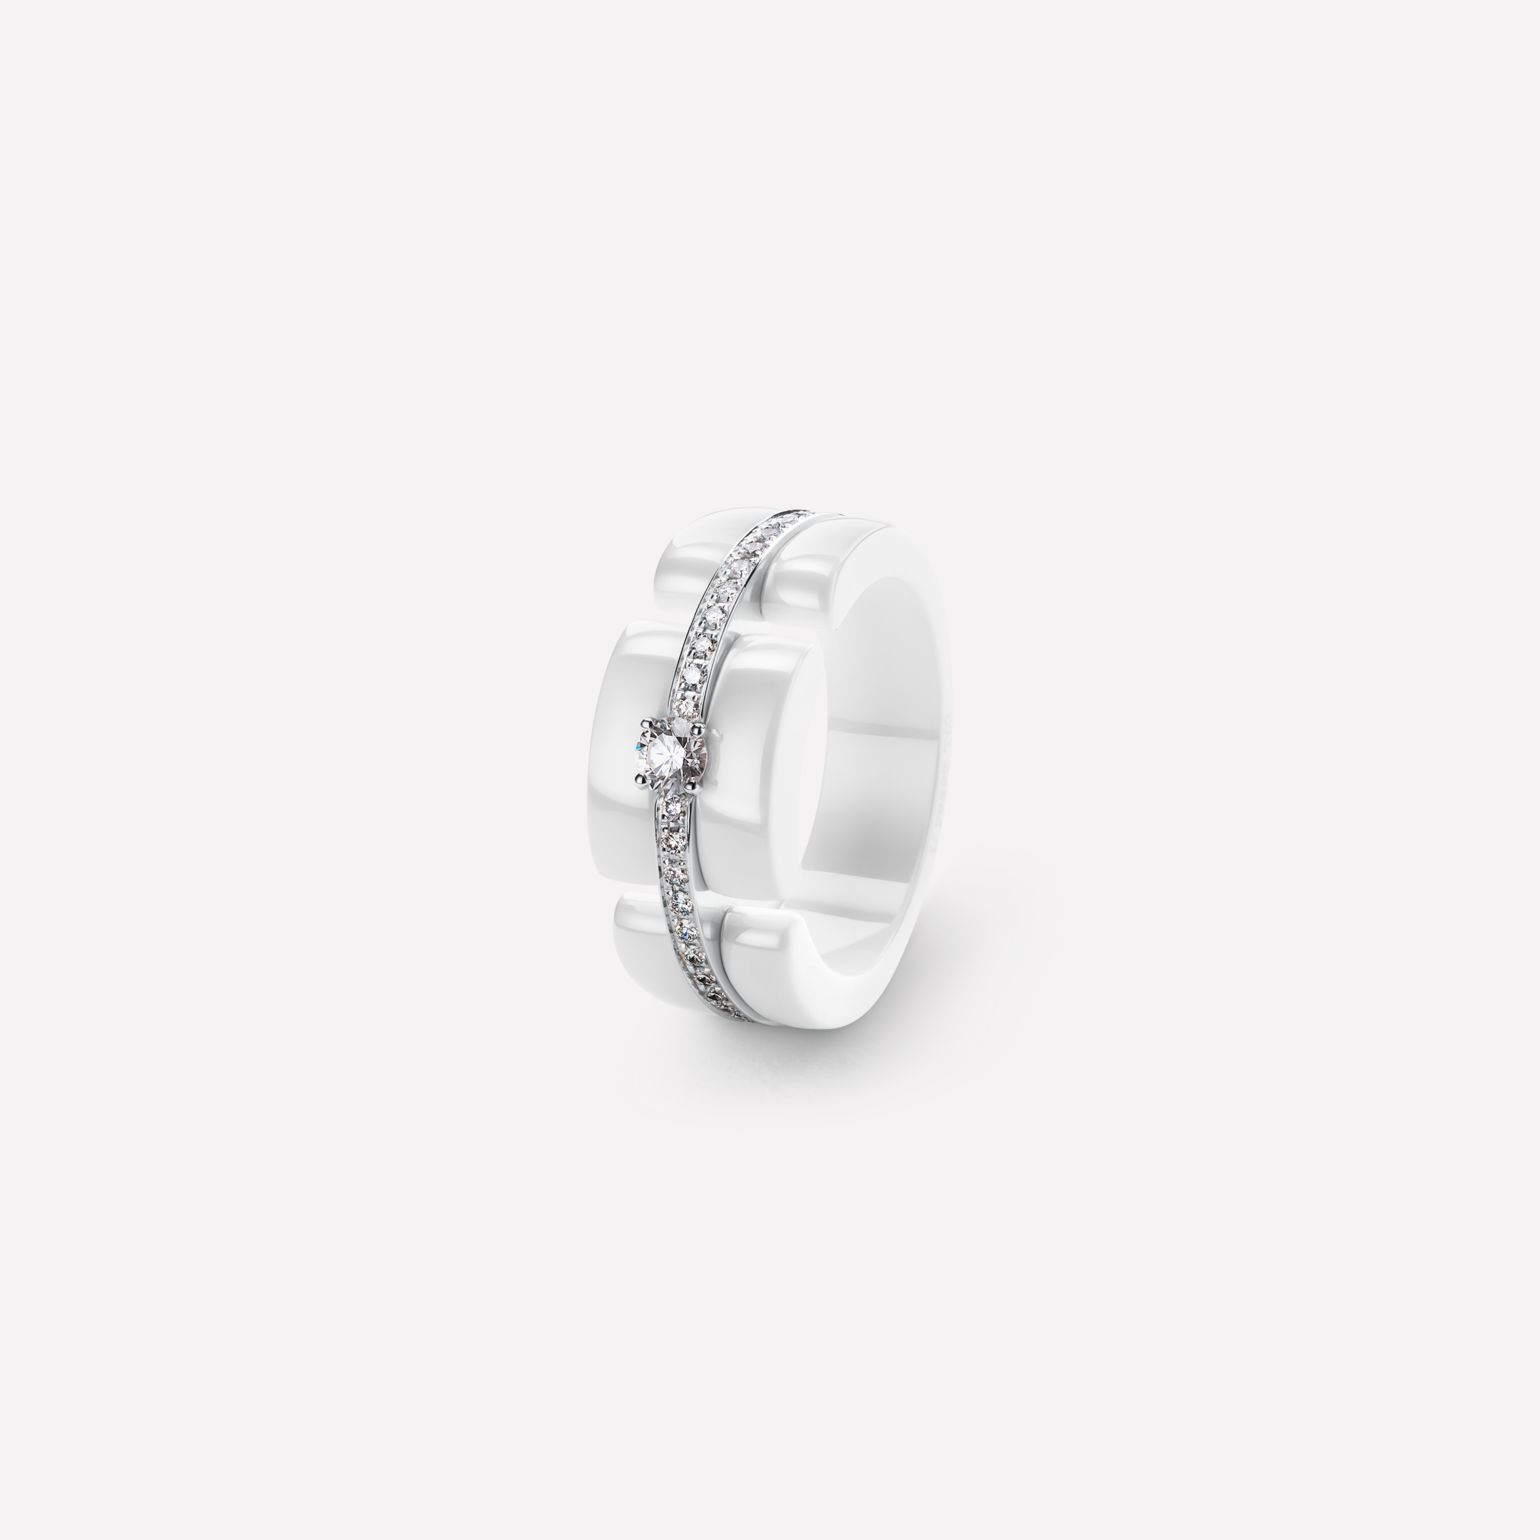 Ultra Ring Ultra ring in white ceramic, 18K white gold, diamonds and central diamond. Large, rigid version.